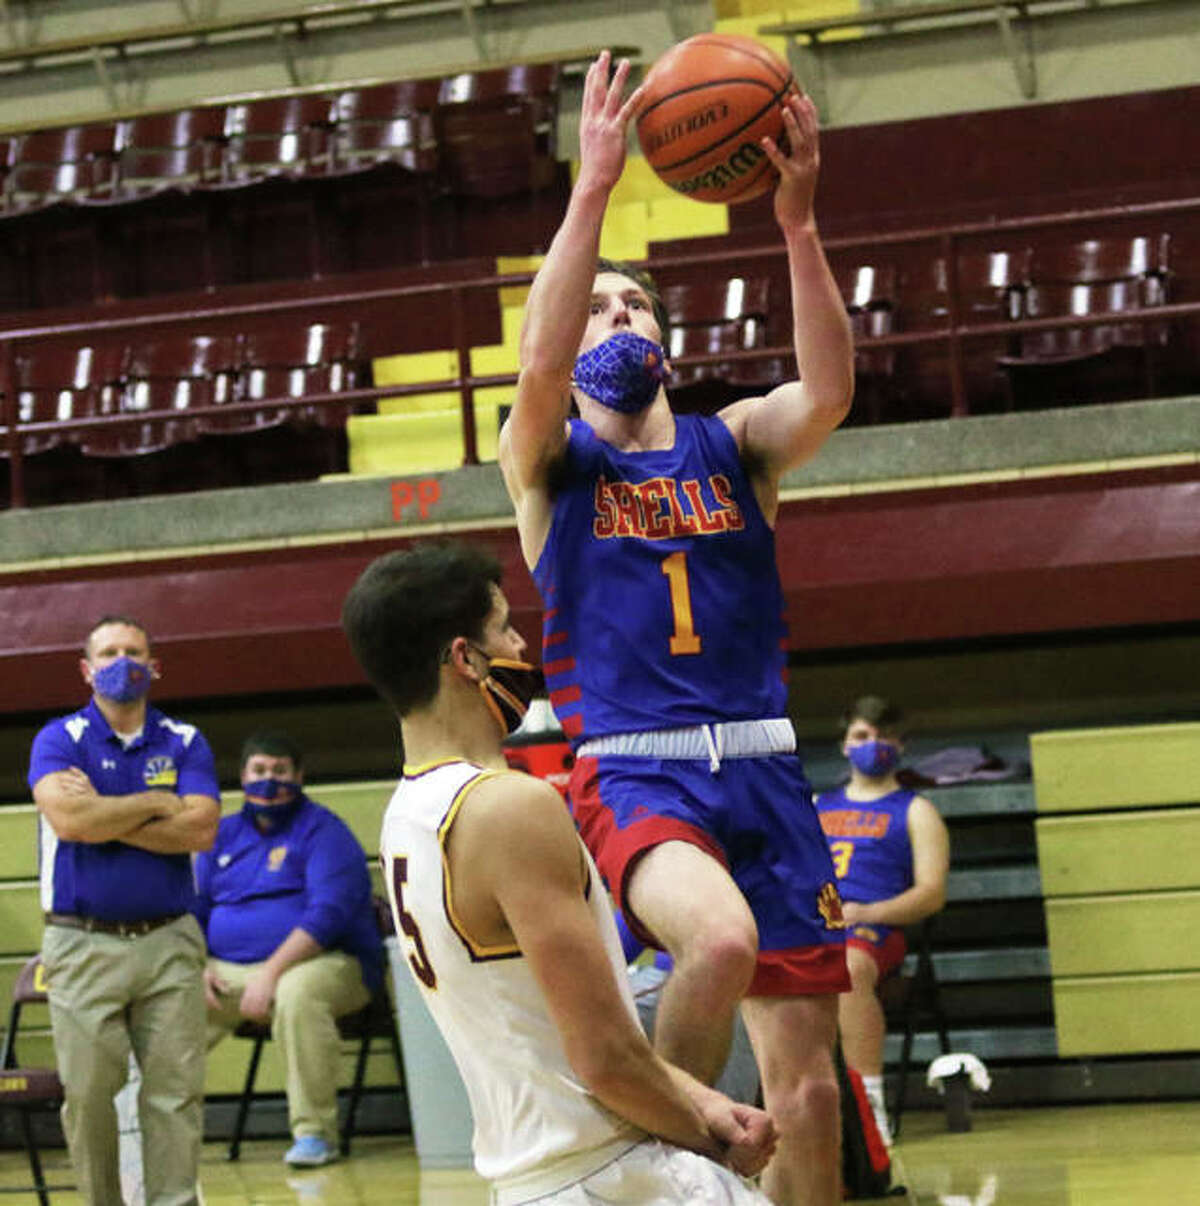 Roxana senior Drew Beckman (1) does in for a layup past EA-WR's Ryan Dawson in a Feb. 6 game in Wood River. Beckman has been dismissed from the team shortly after becoming the 12th player in program history to score 1,000 career points.